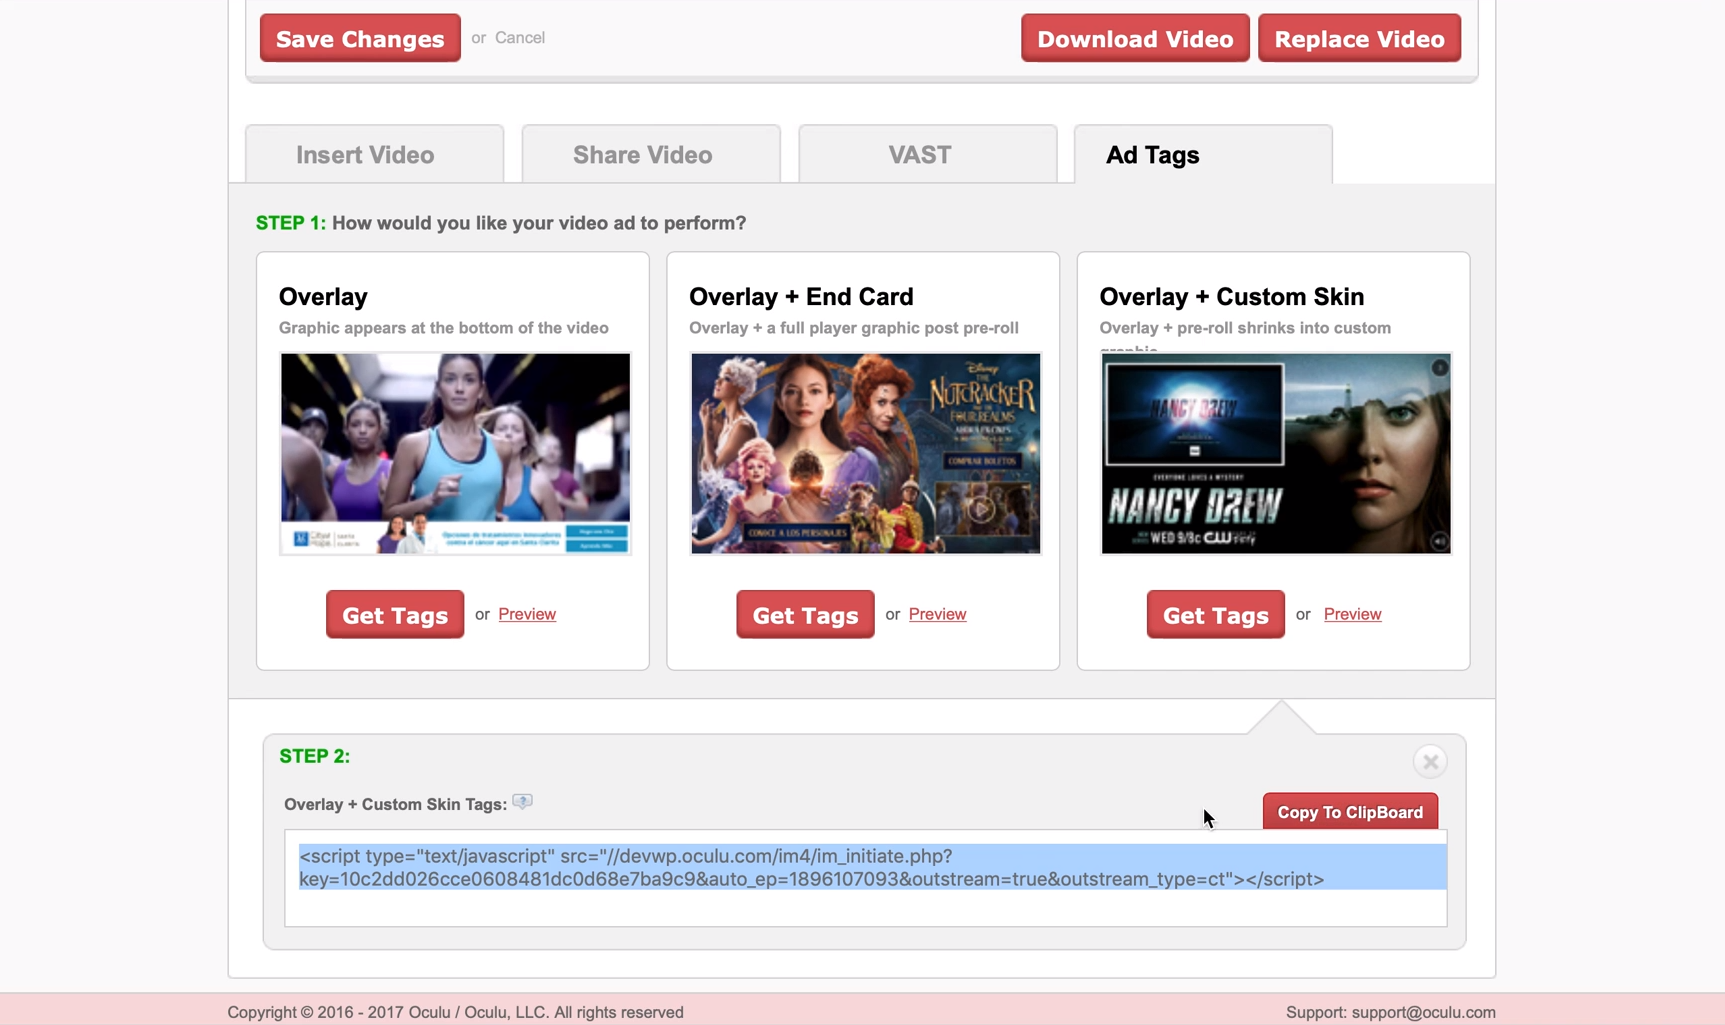 Oculu now offers ad tags to in-house programmatic teams to serve emerging video formats